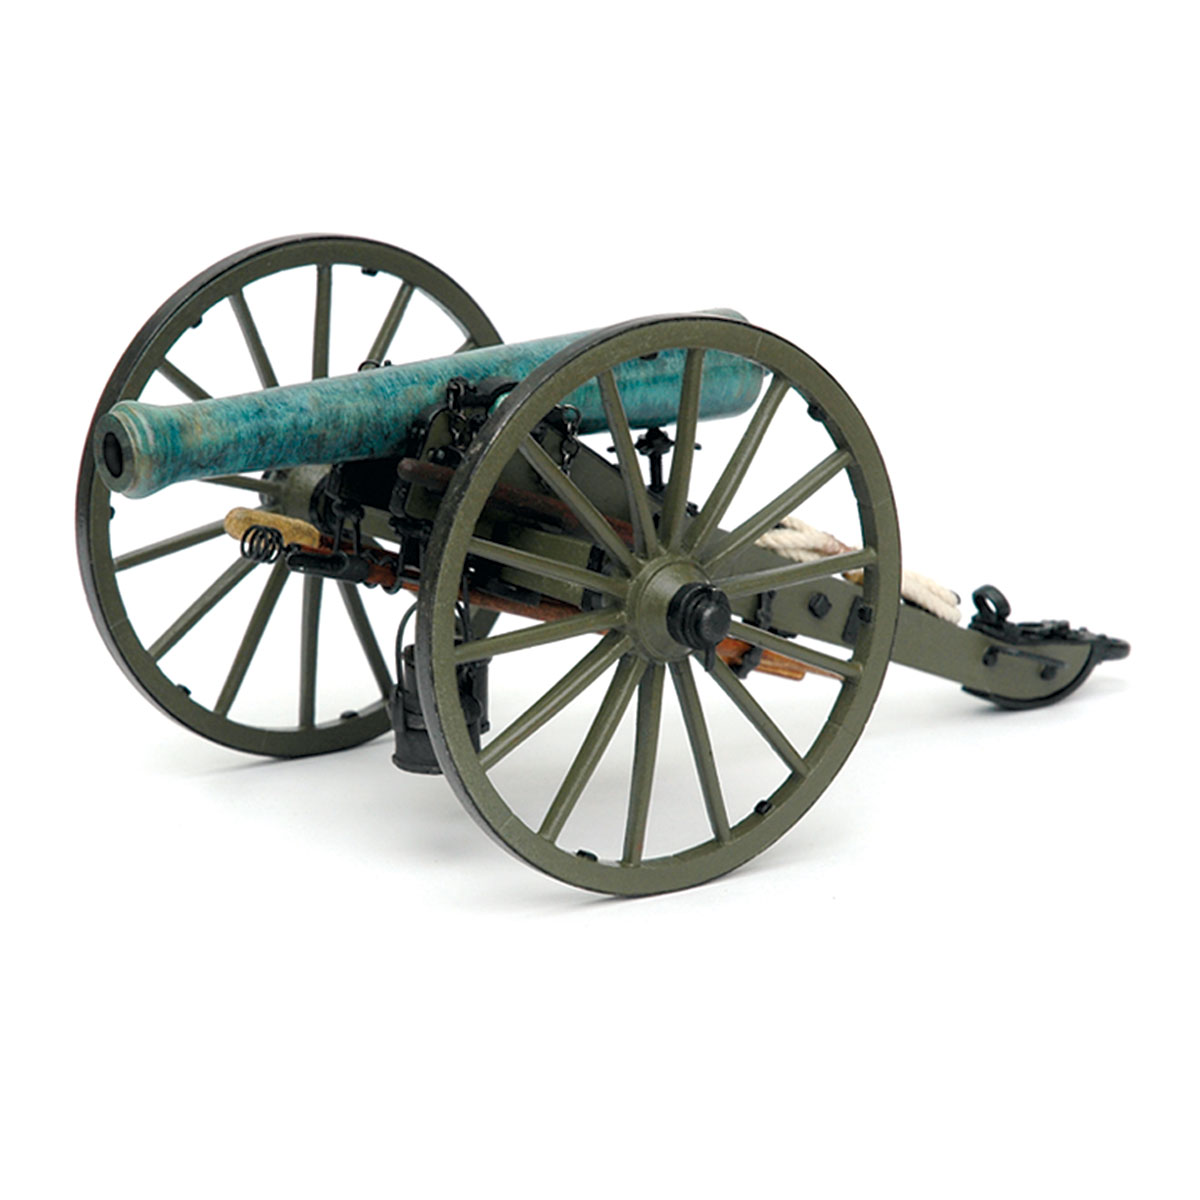 guns of history napoleon cannon 12 lbr 1 16 scale